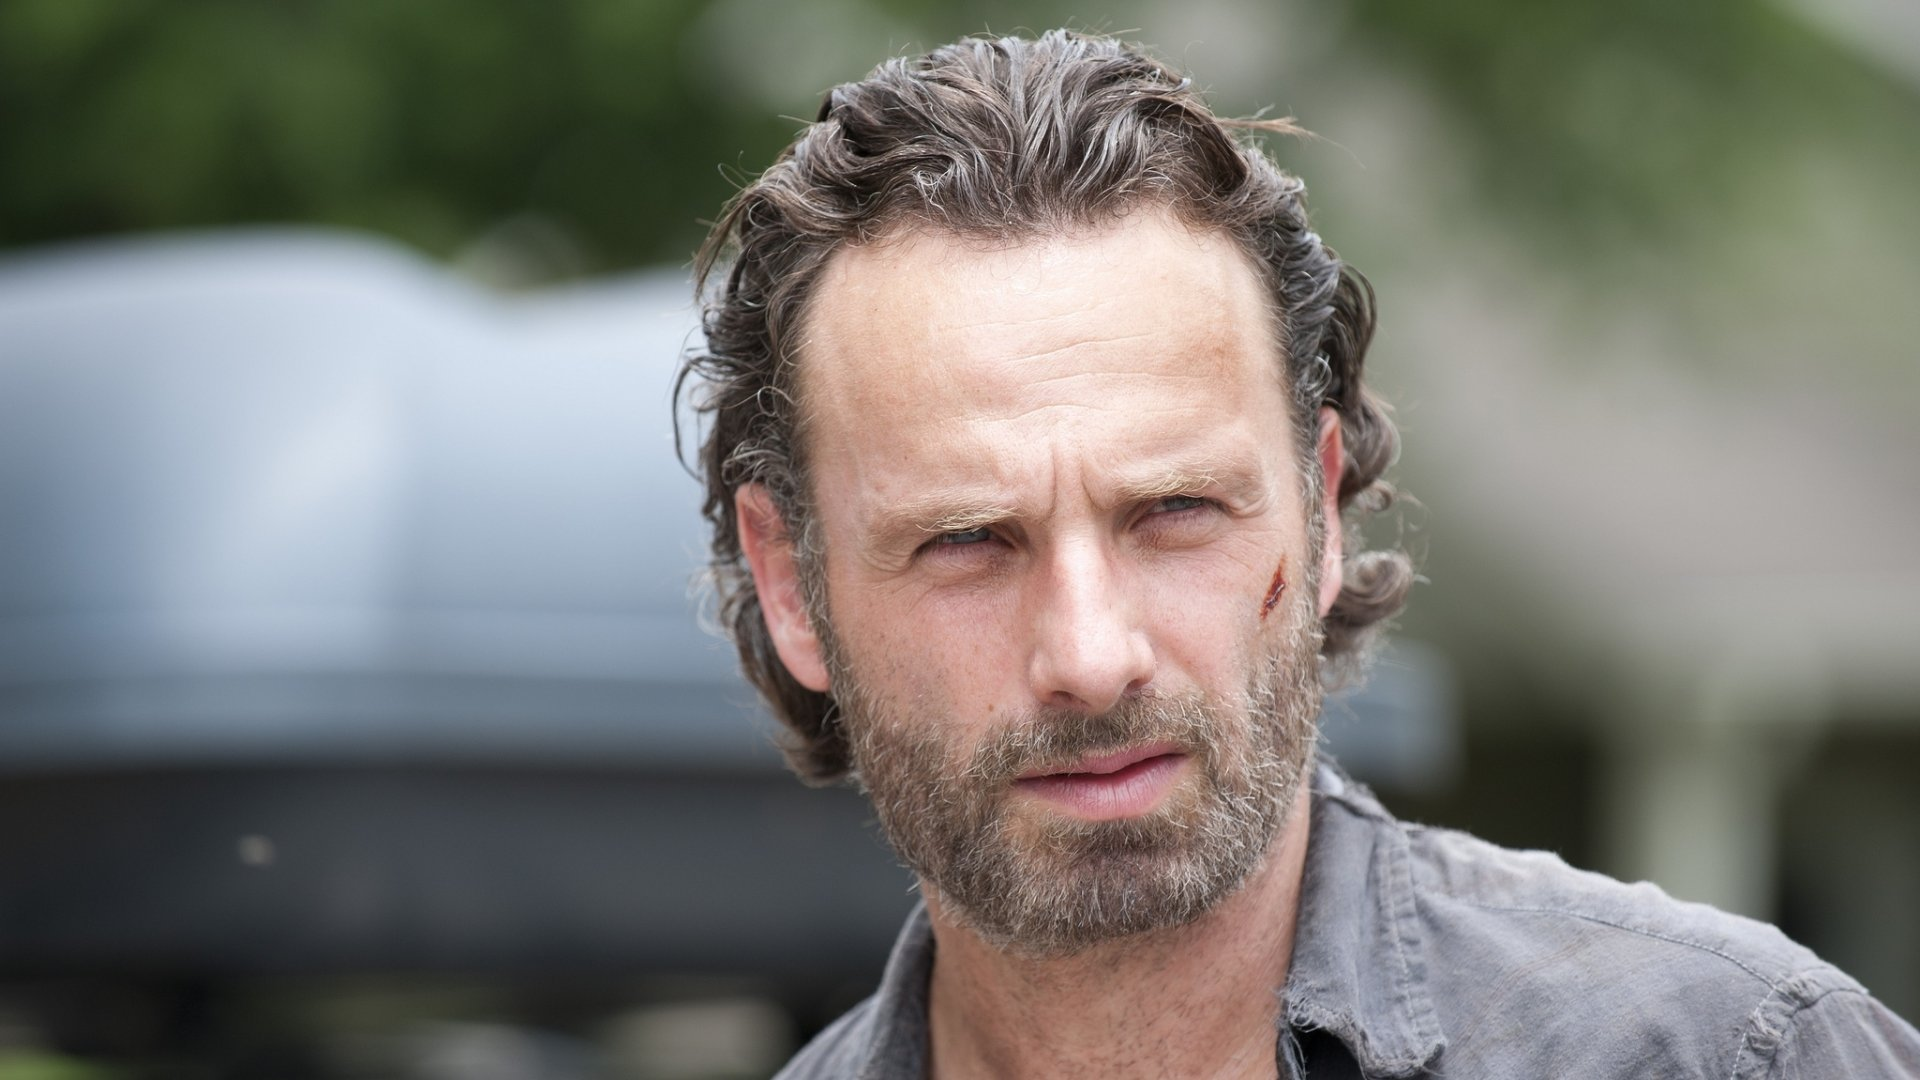 Download full hd 1920x1080 Rick Grimes PC background ID:190368 for free